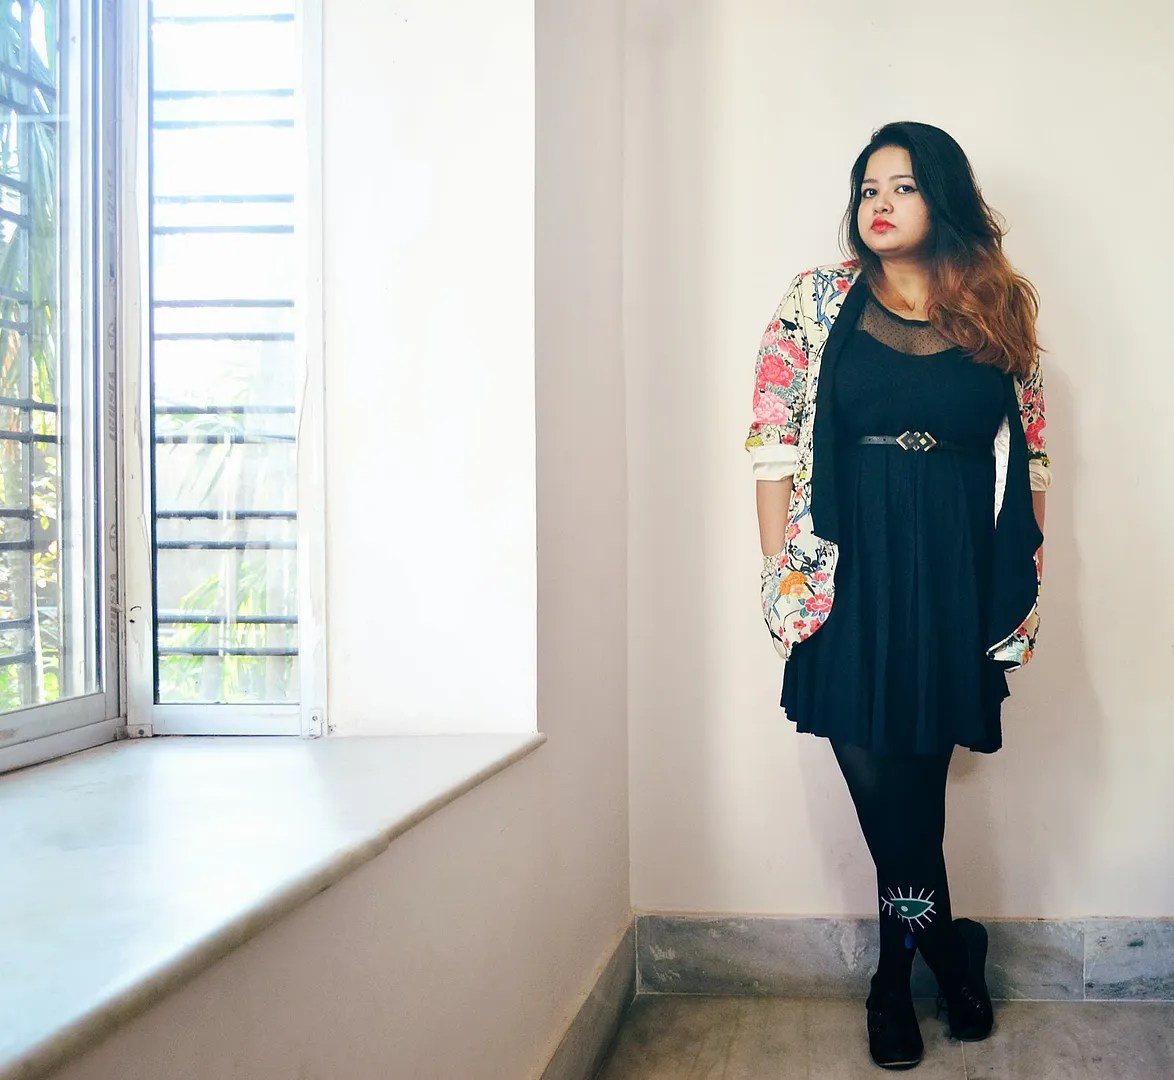 plus size outfit with black dress, floral jacket, and black tights with blue eye designs